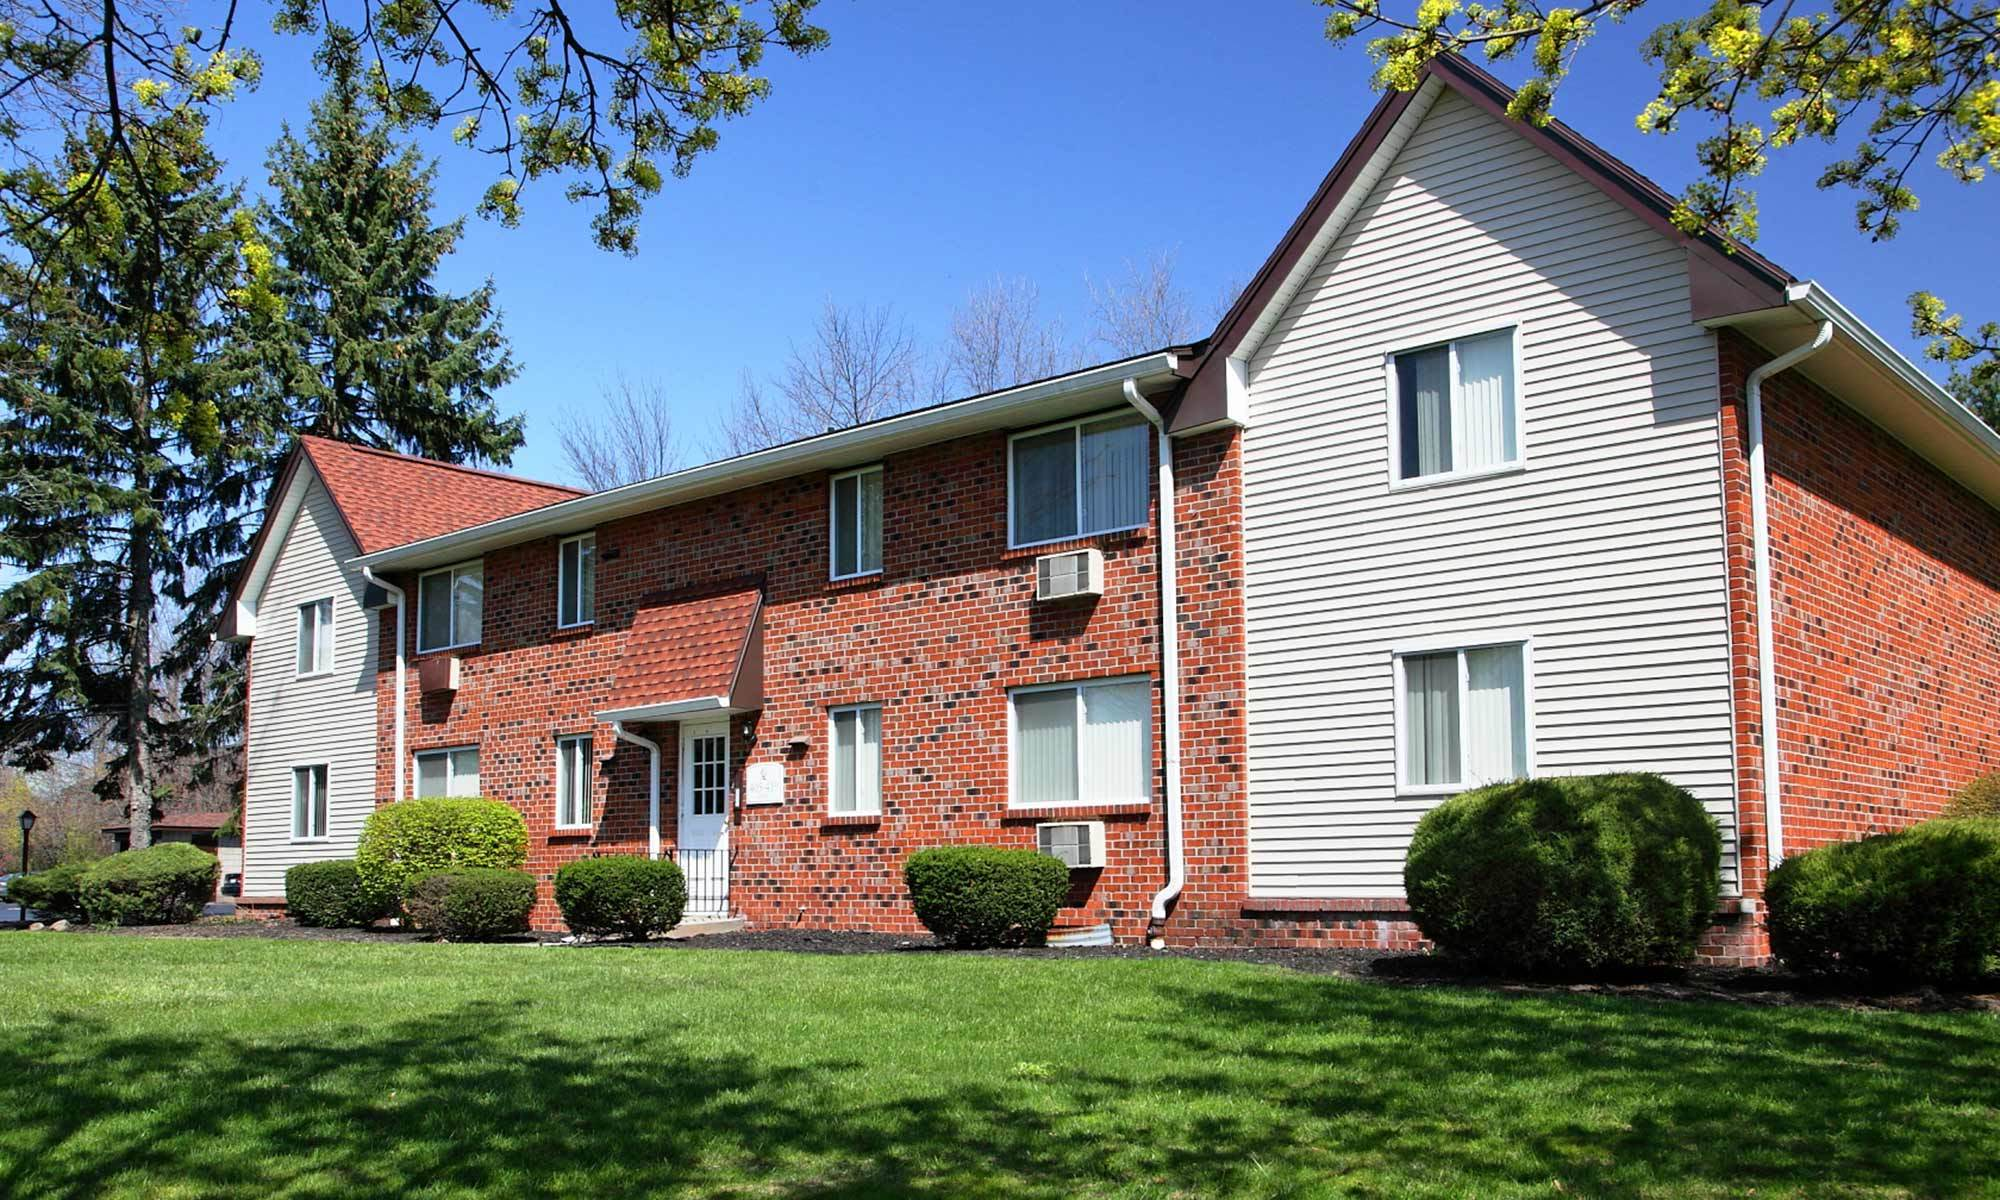 Apartments in Fairport, NY